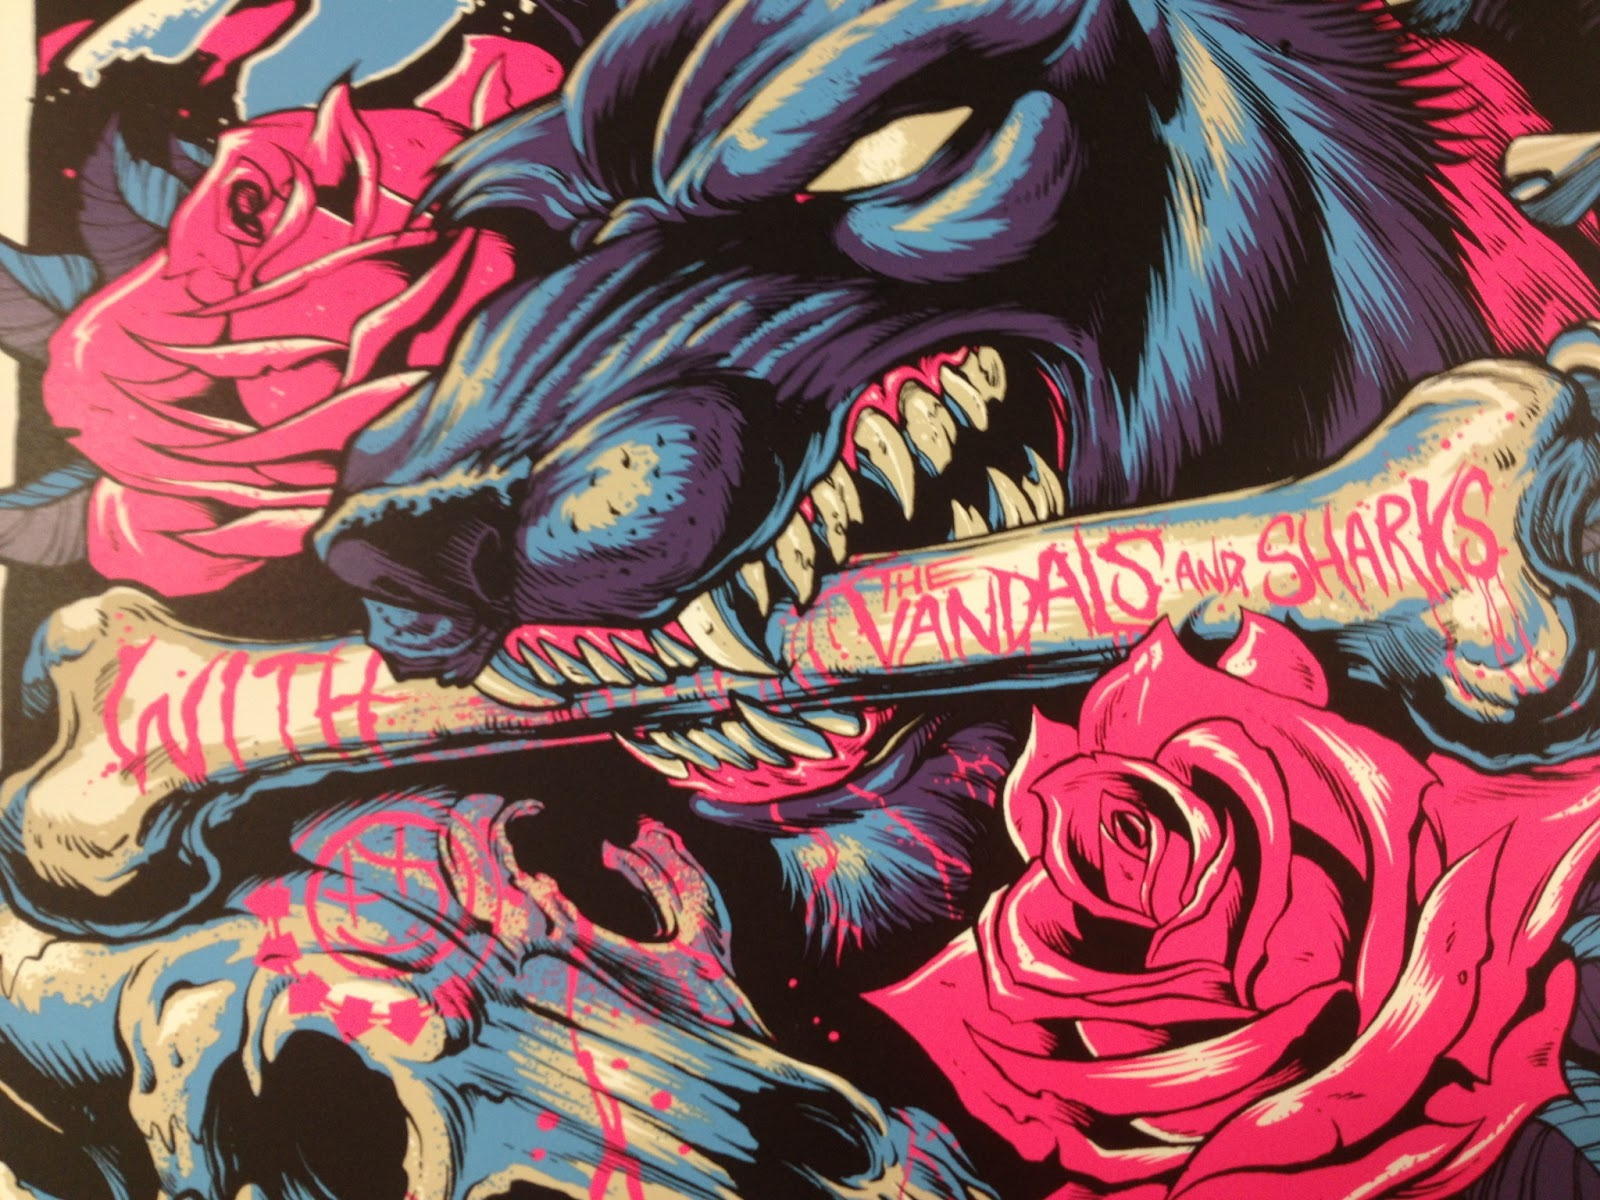 INSIDE THE ROCK POSTER FRAME BLOG: Tonight\'s blink-182 poster from ...